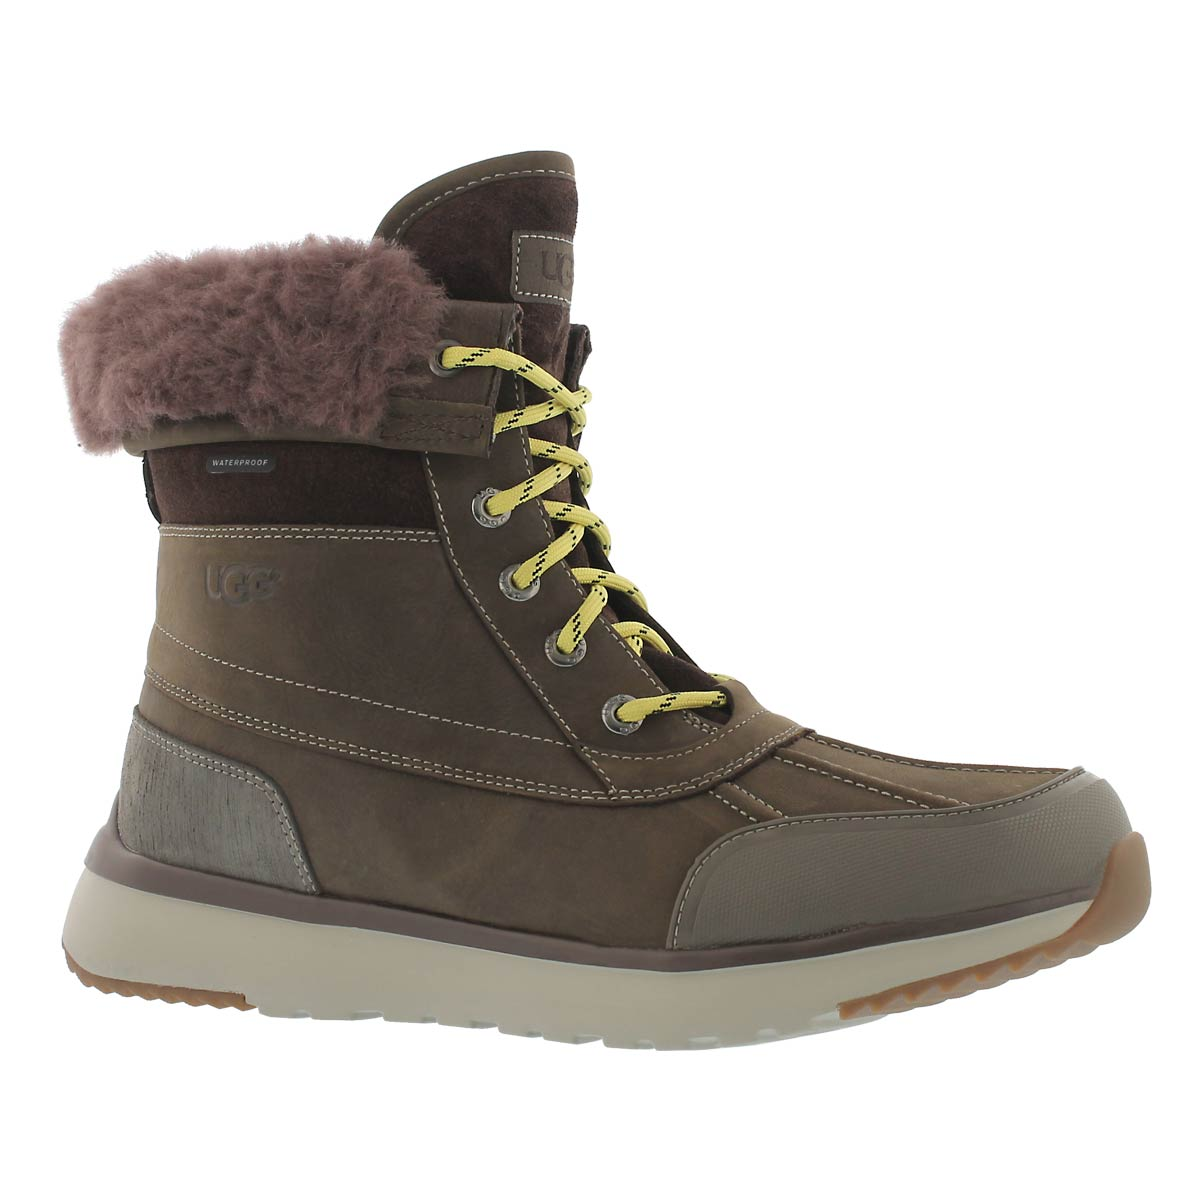 Men's ELIASSON slate lace up winter boots